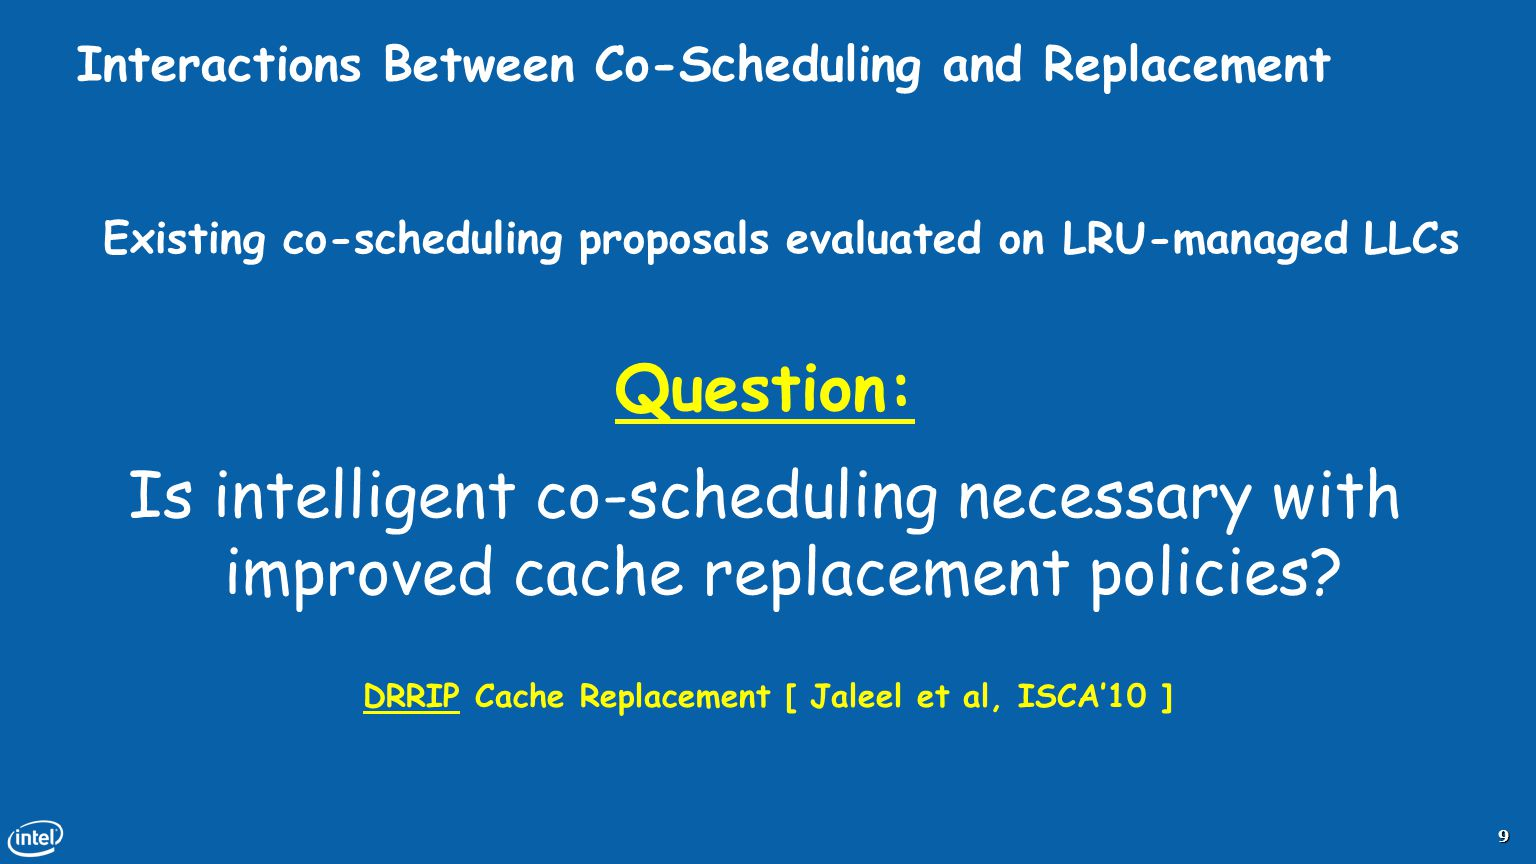 Interactions Between Co-Scheduling and Replacement